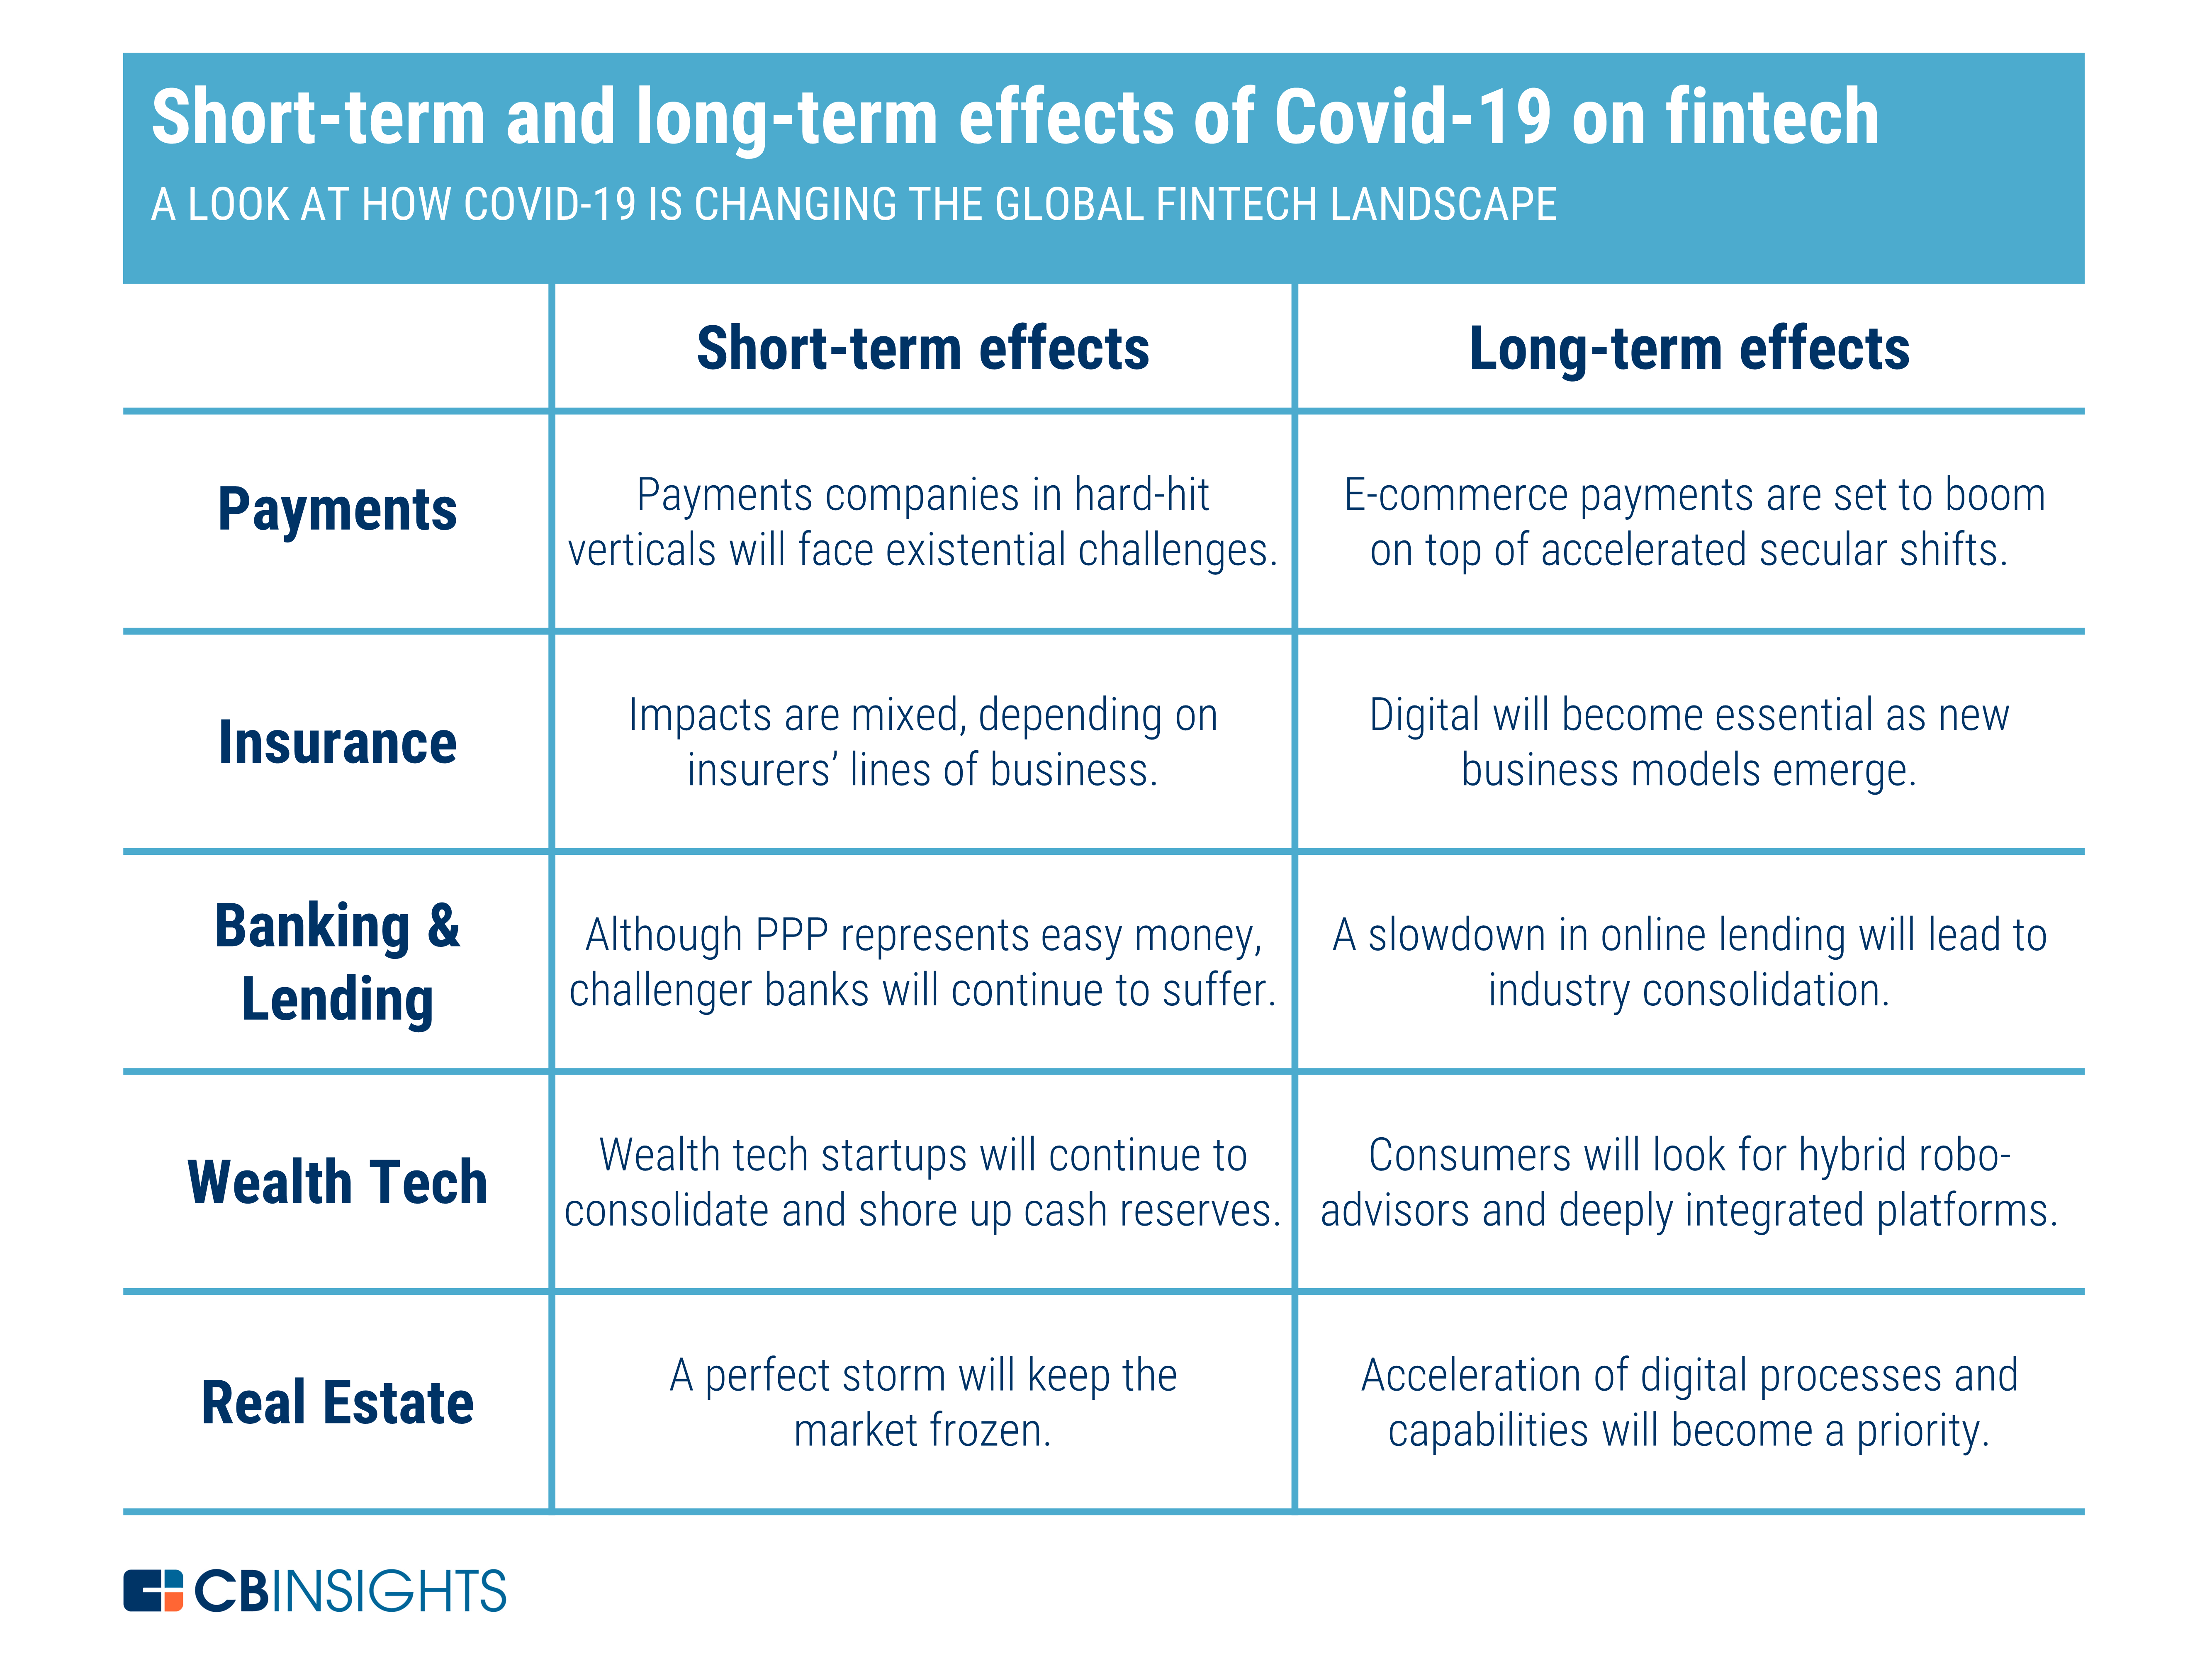 Short-term and long-term effects of COVID-19 on Fintech, June 2020, Source: CB Insights